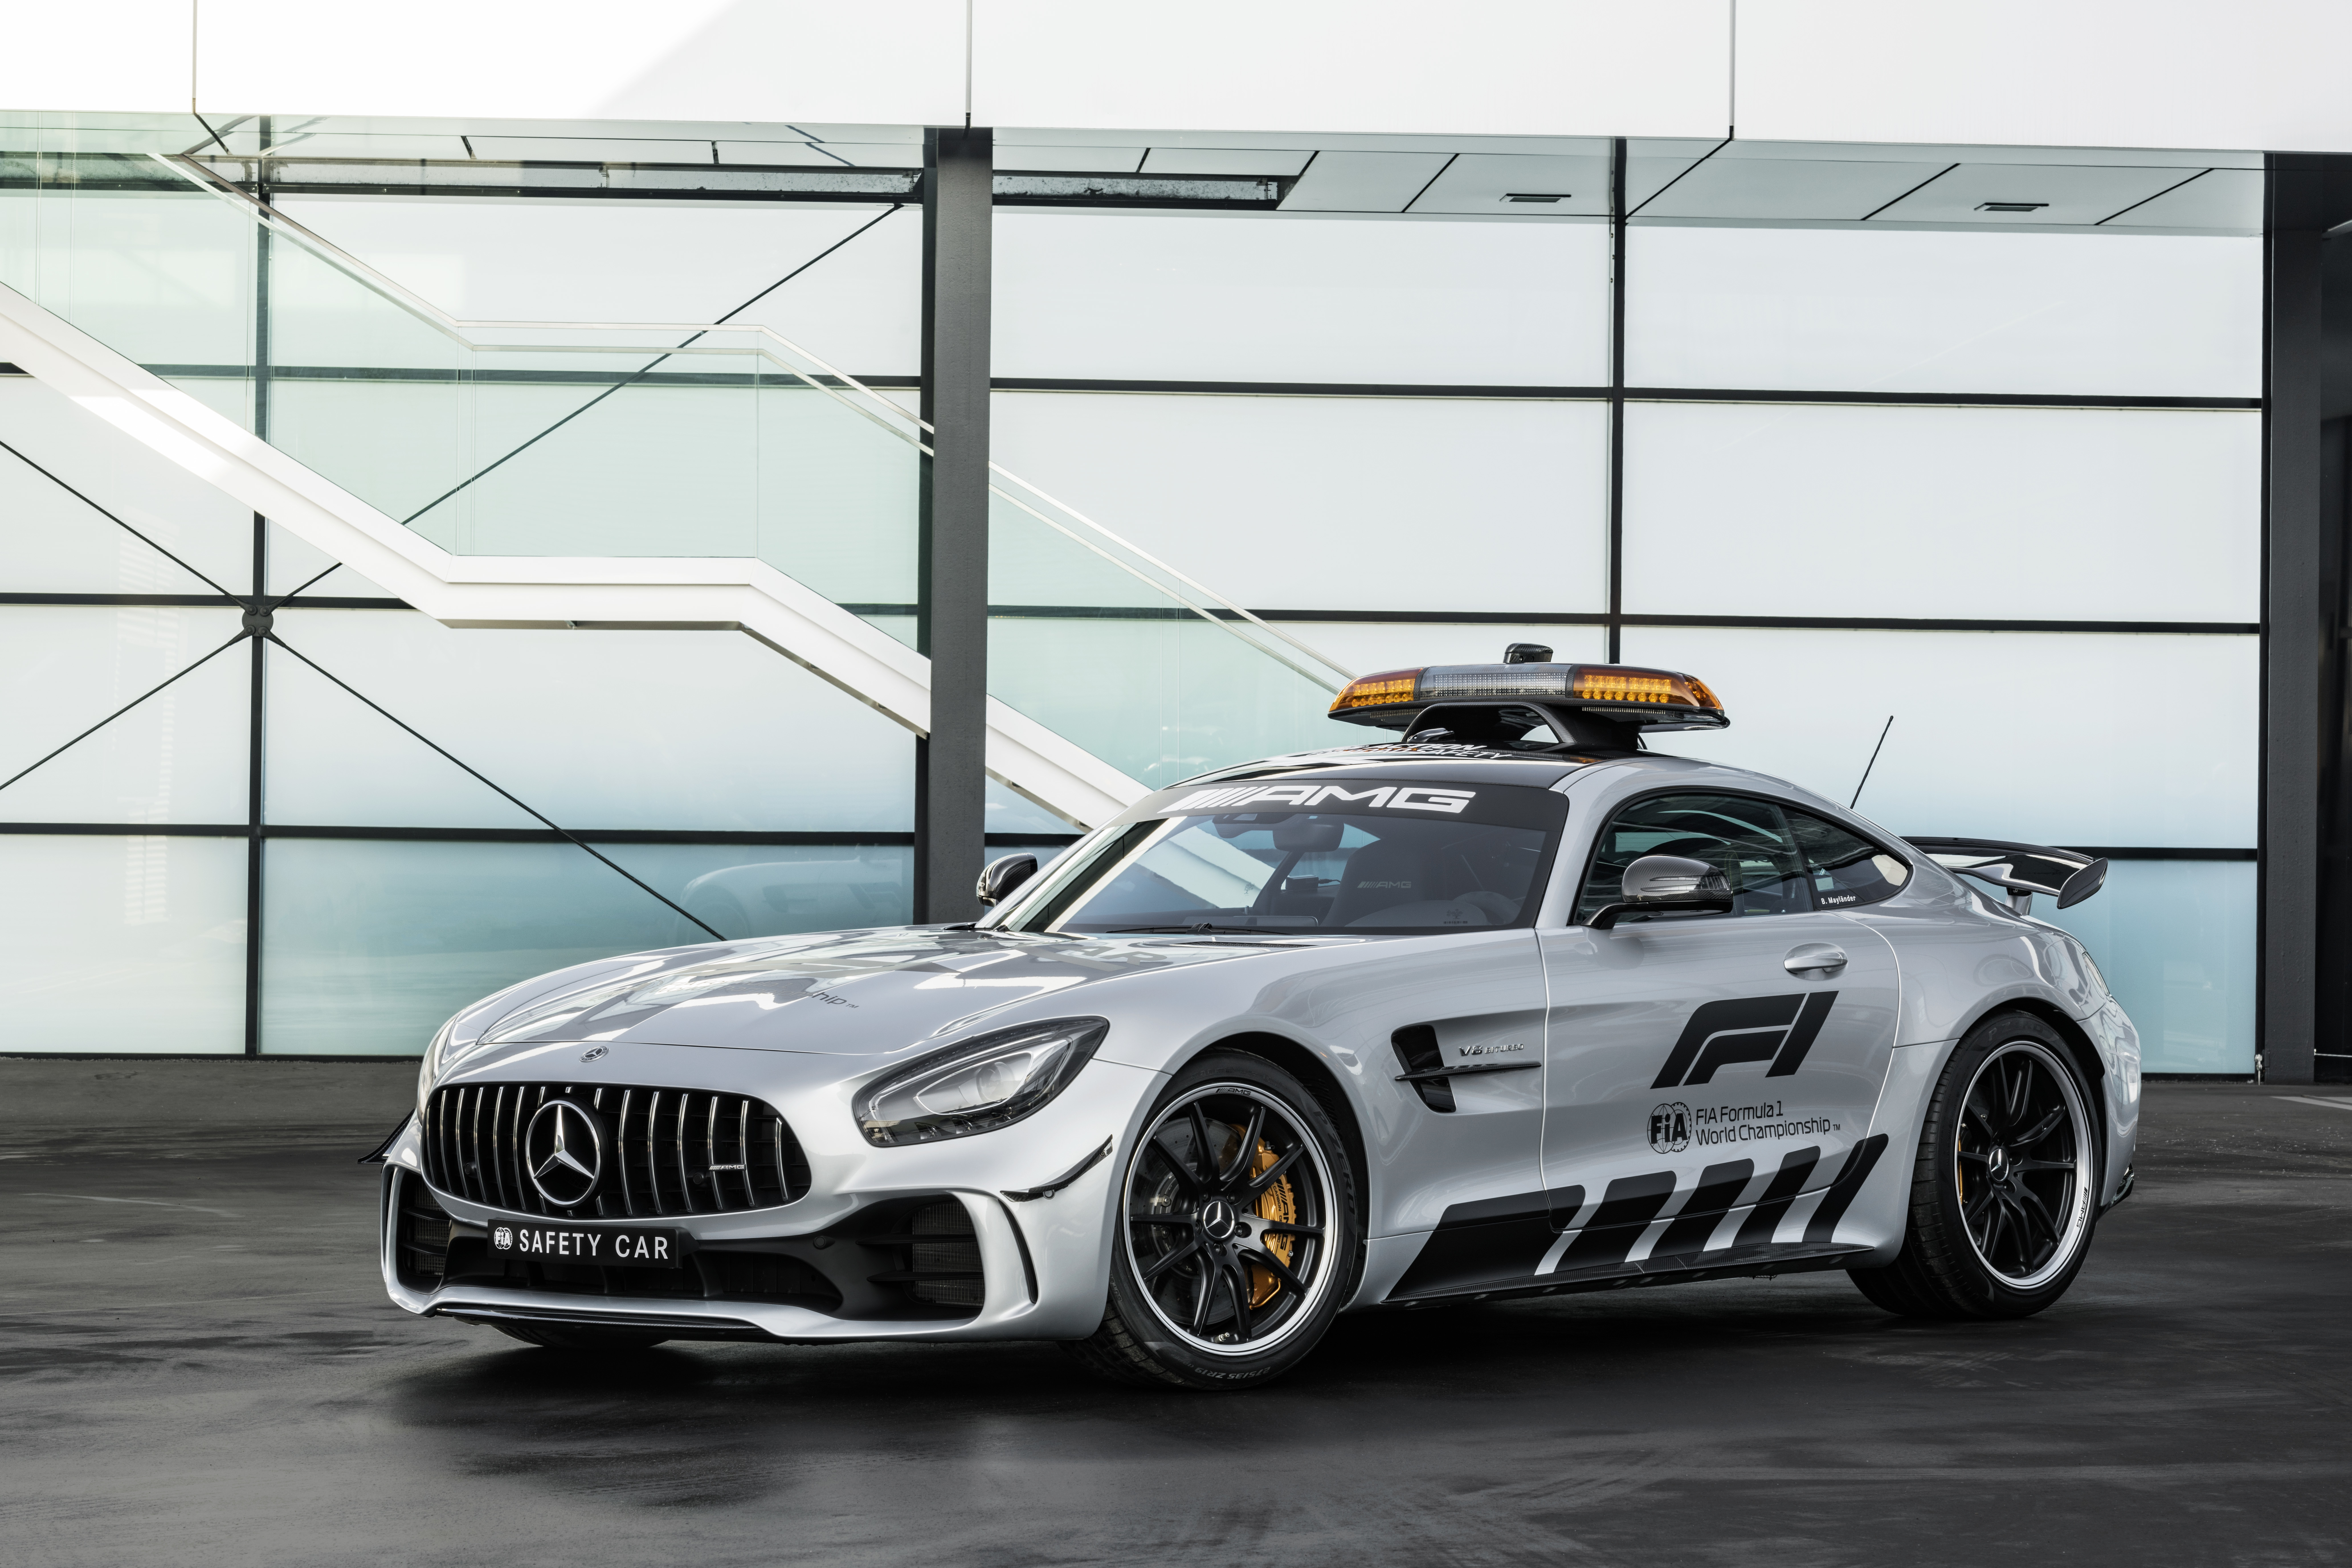 The new Mercedes-AMG GT pace car for this year's Australian GP.